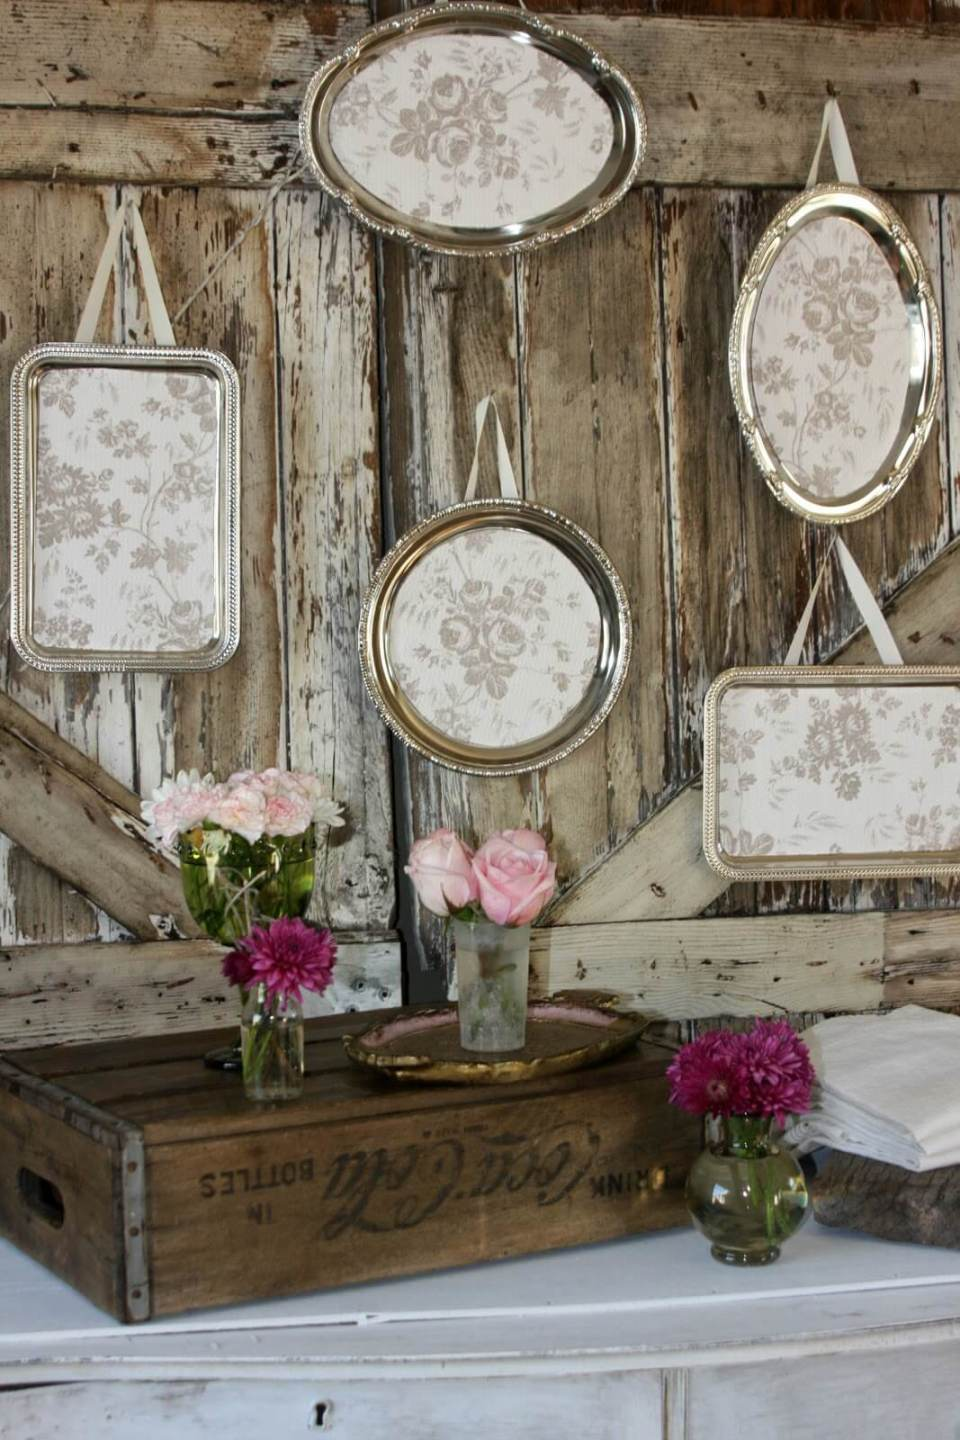 Antique Silverplate Hanging Wall Art   Vintage Porch Decor Ideas